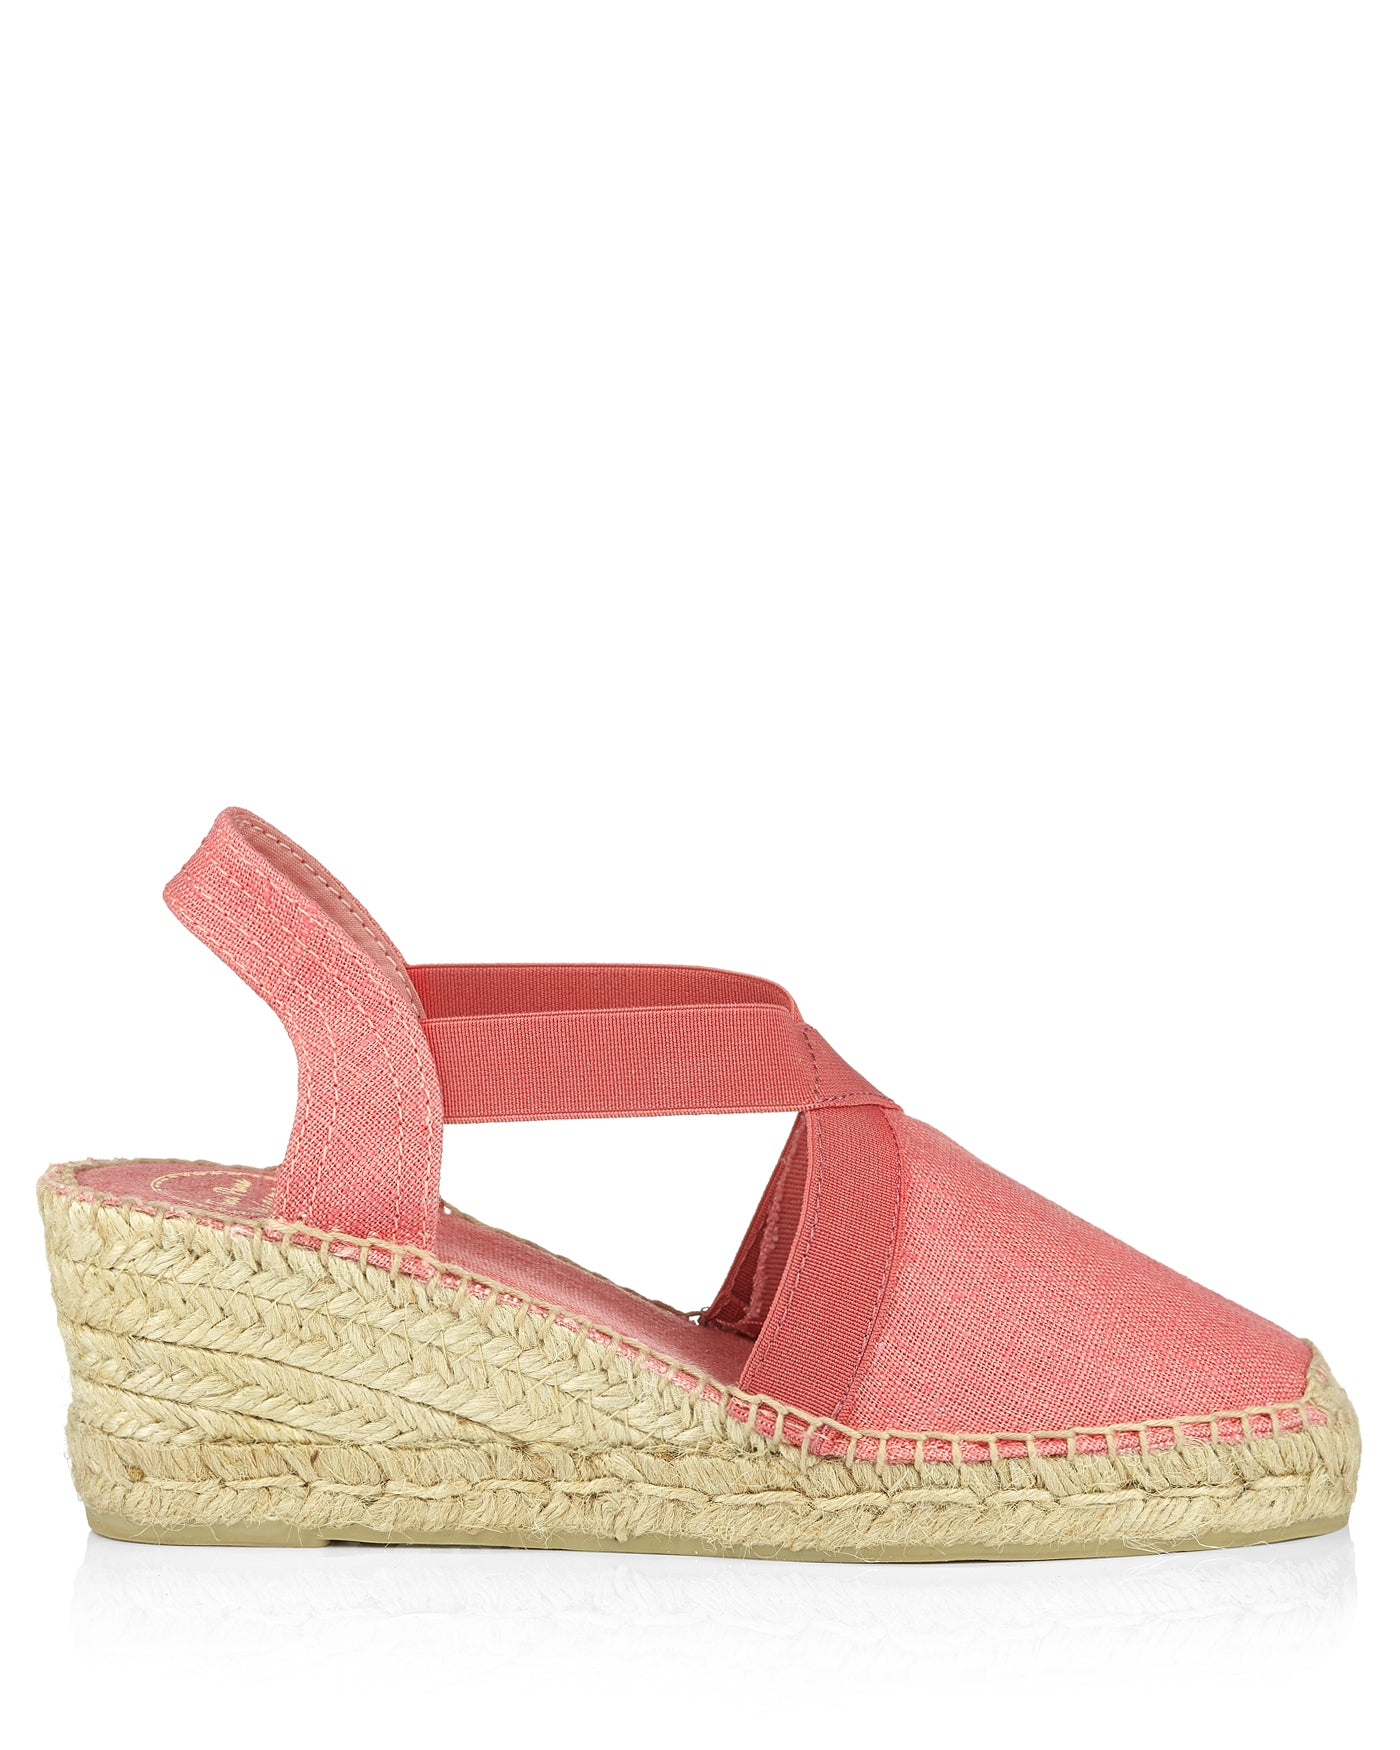 Ter Coral Linen Wedge Espadrilles - The Espadrille Hut